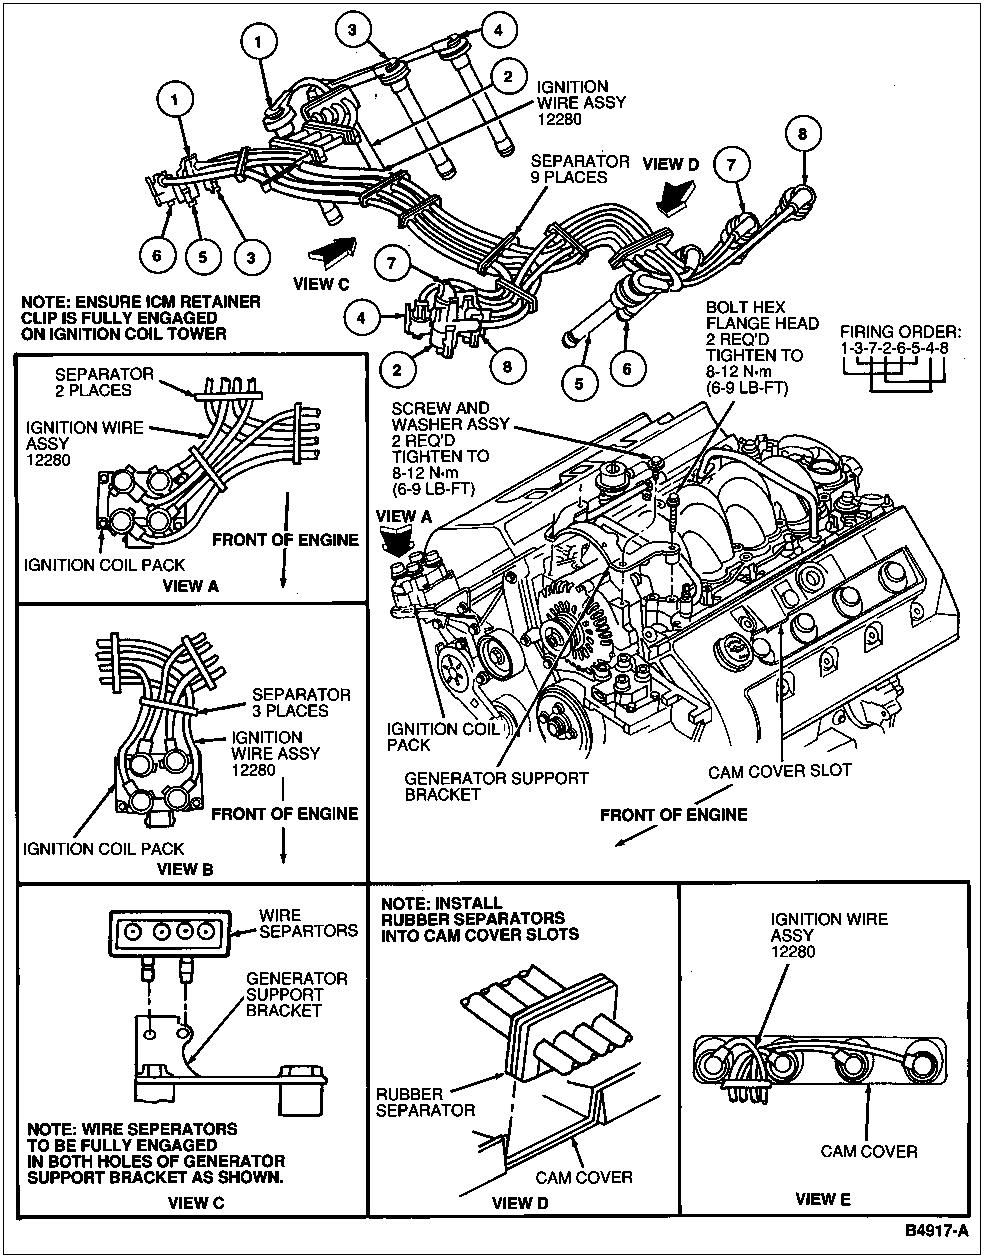 02 Lincoln Blackwood Fuse Box Diagram Wiring Schematic 1994 Mark Viii Library 94 Need Help Please Lincolns Online Message Forum 1999 Continental